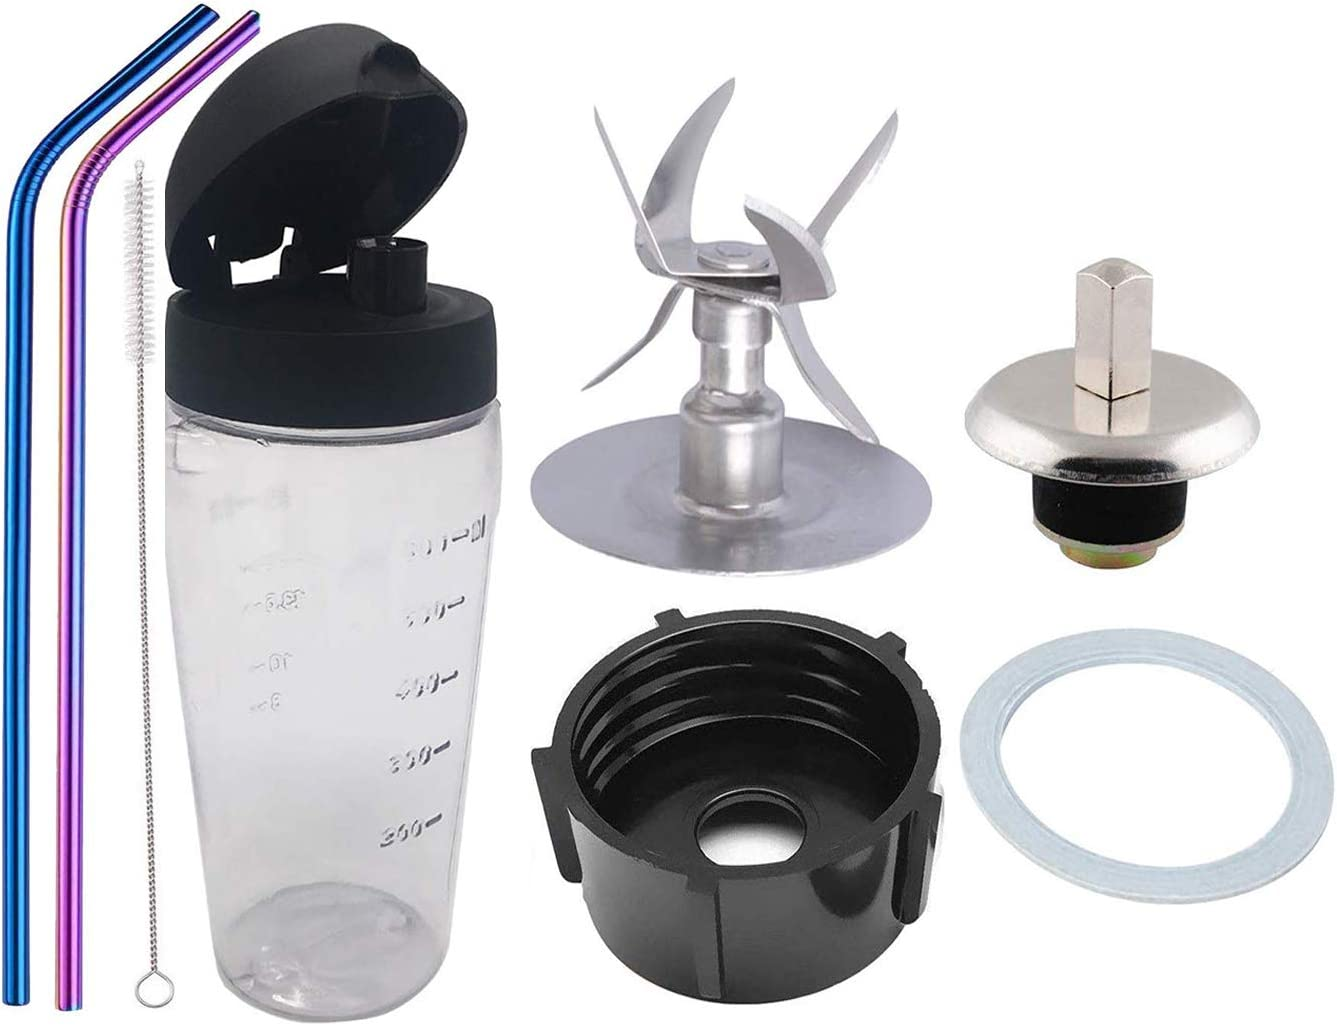 Bottle cup with lid and 6-Point Blade with Sealing Ring Gasket Blender 4902 Blender Jar Bottom Coupling Stud Pin Stainless Steel Straw Cleaning Brush Kit For Blender Blend-N-Go Smoothie Kit